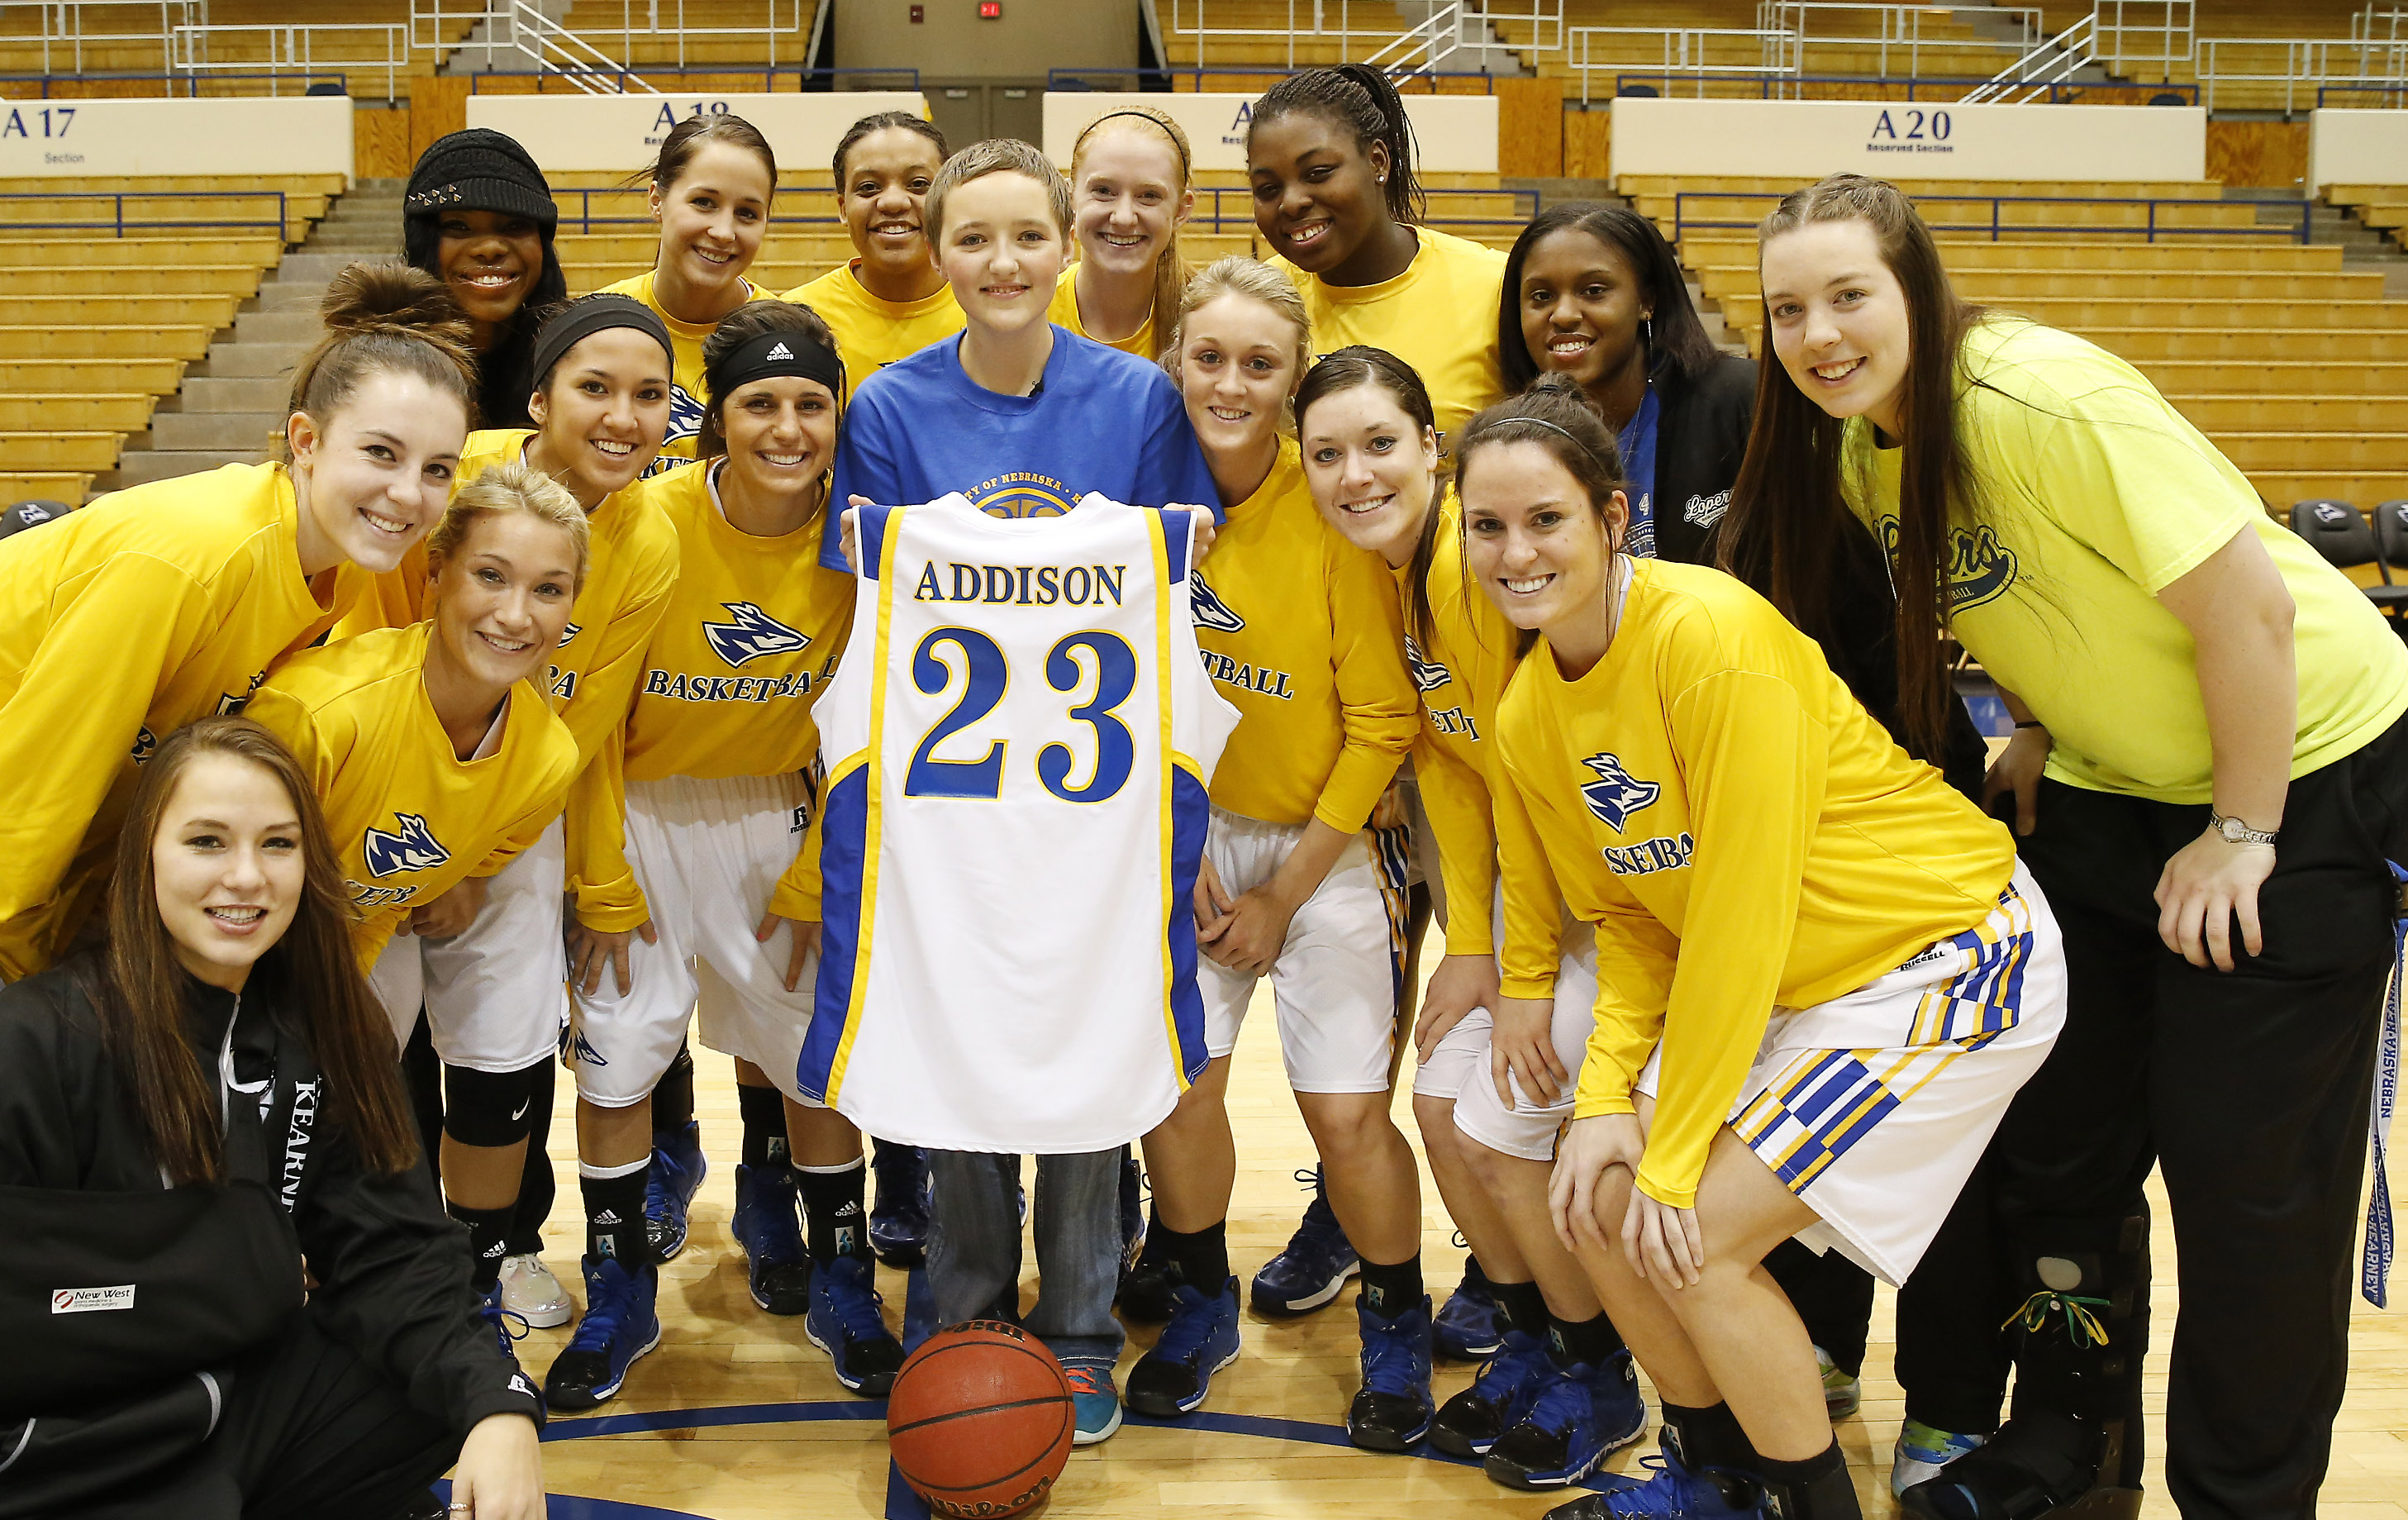 Addison Samuelson Adopted By Unk Basketball Team